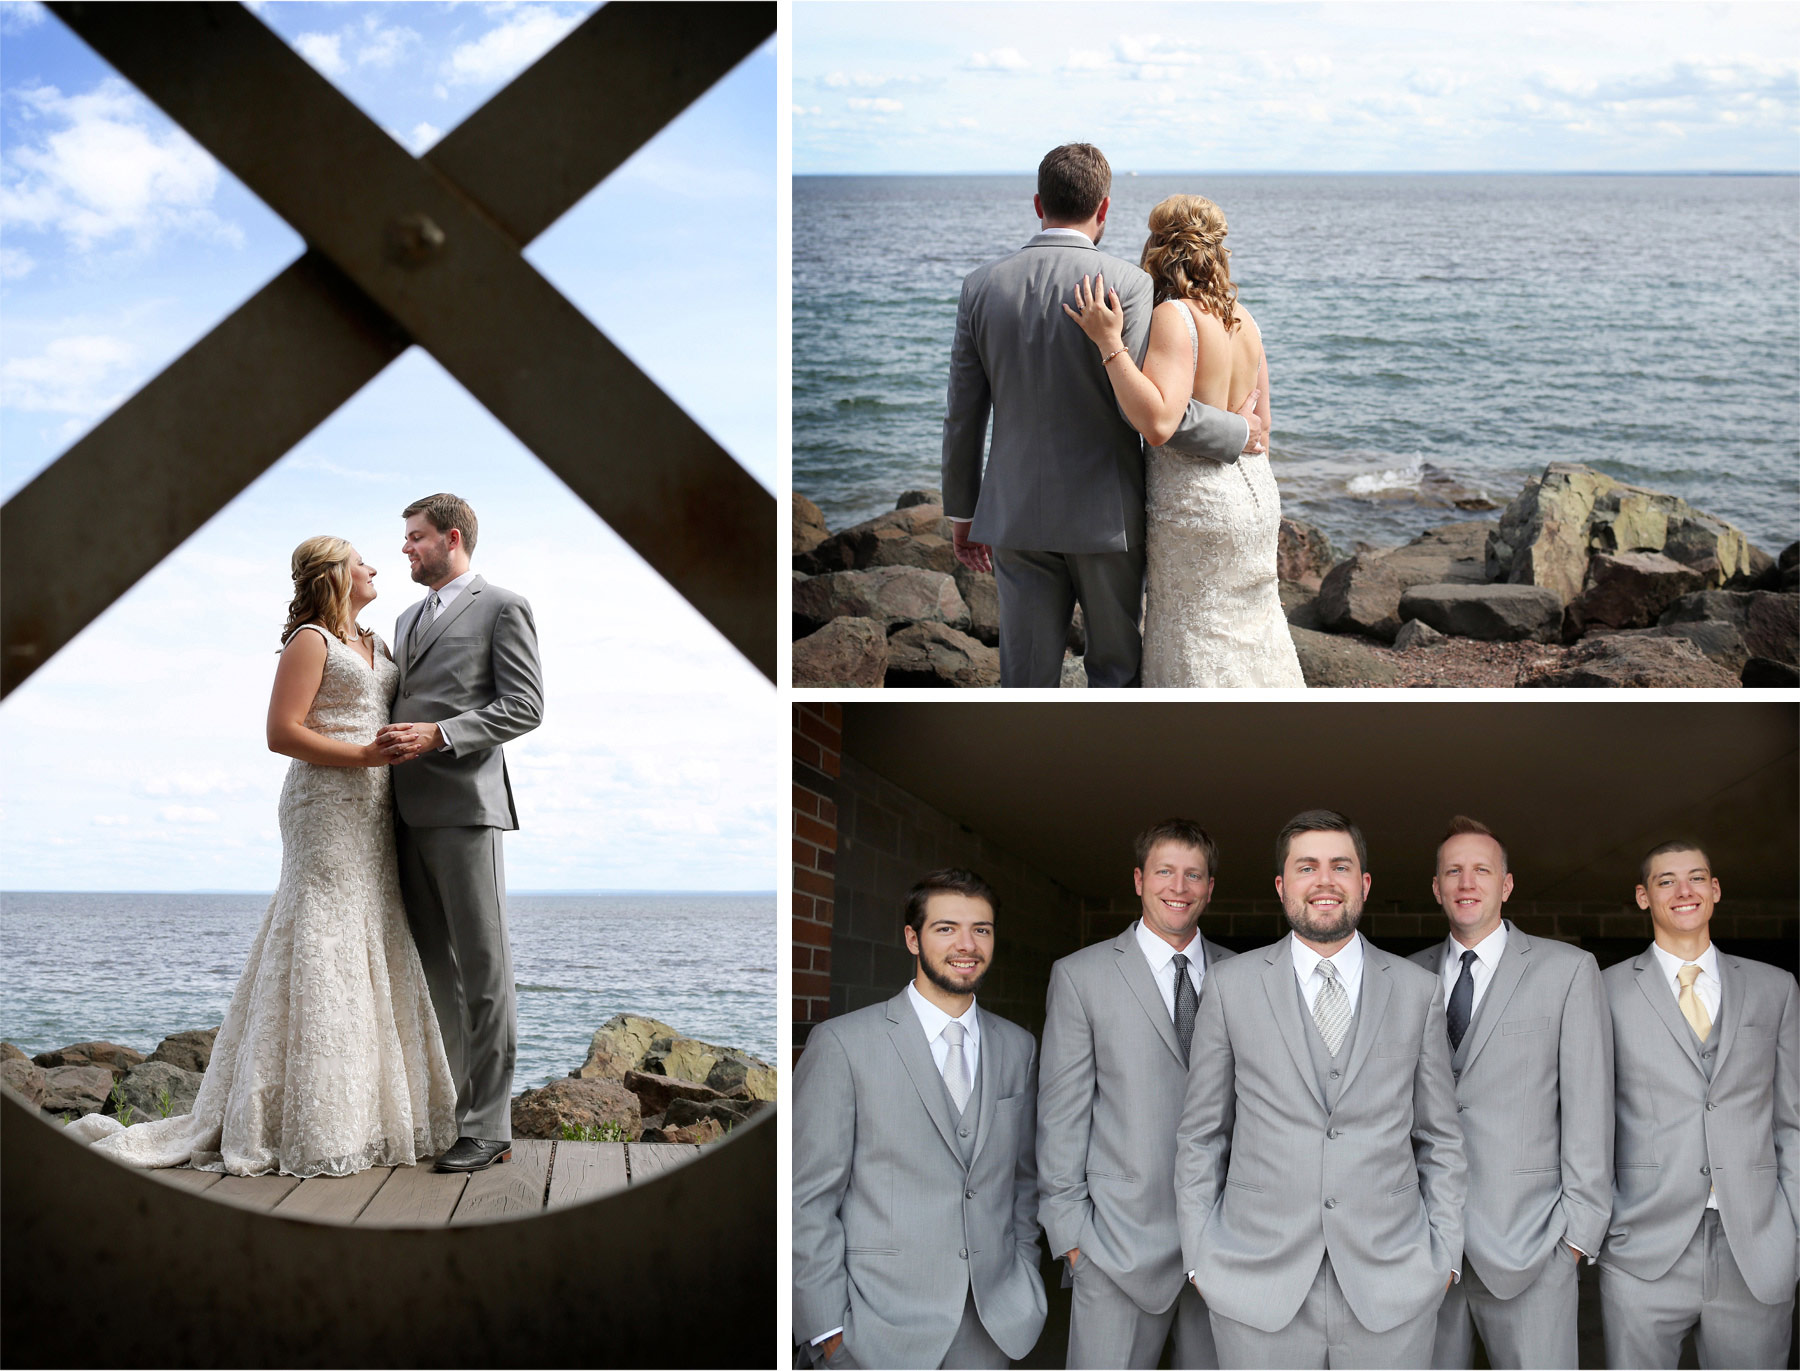 06-Duluth-Minnesota-Wedding-Photographer-by-Andrew-Vick-Photography-Summer-Bride-Groom-First-Meeting-Look-Lake-Superior-Groomsmen-Katie-and-Andrew.jpg